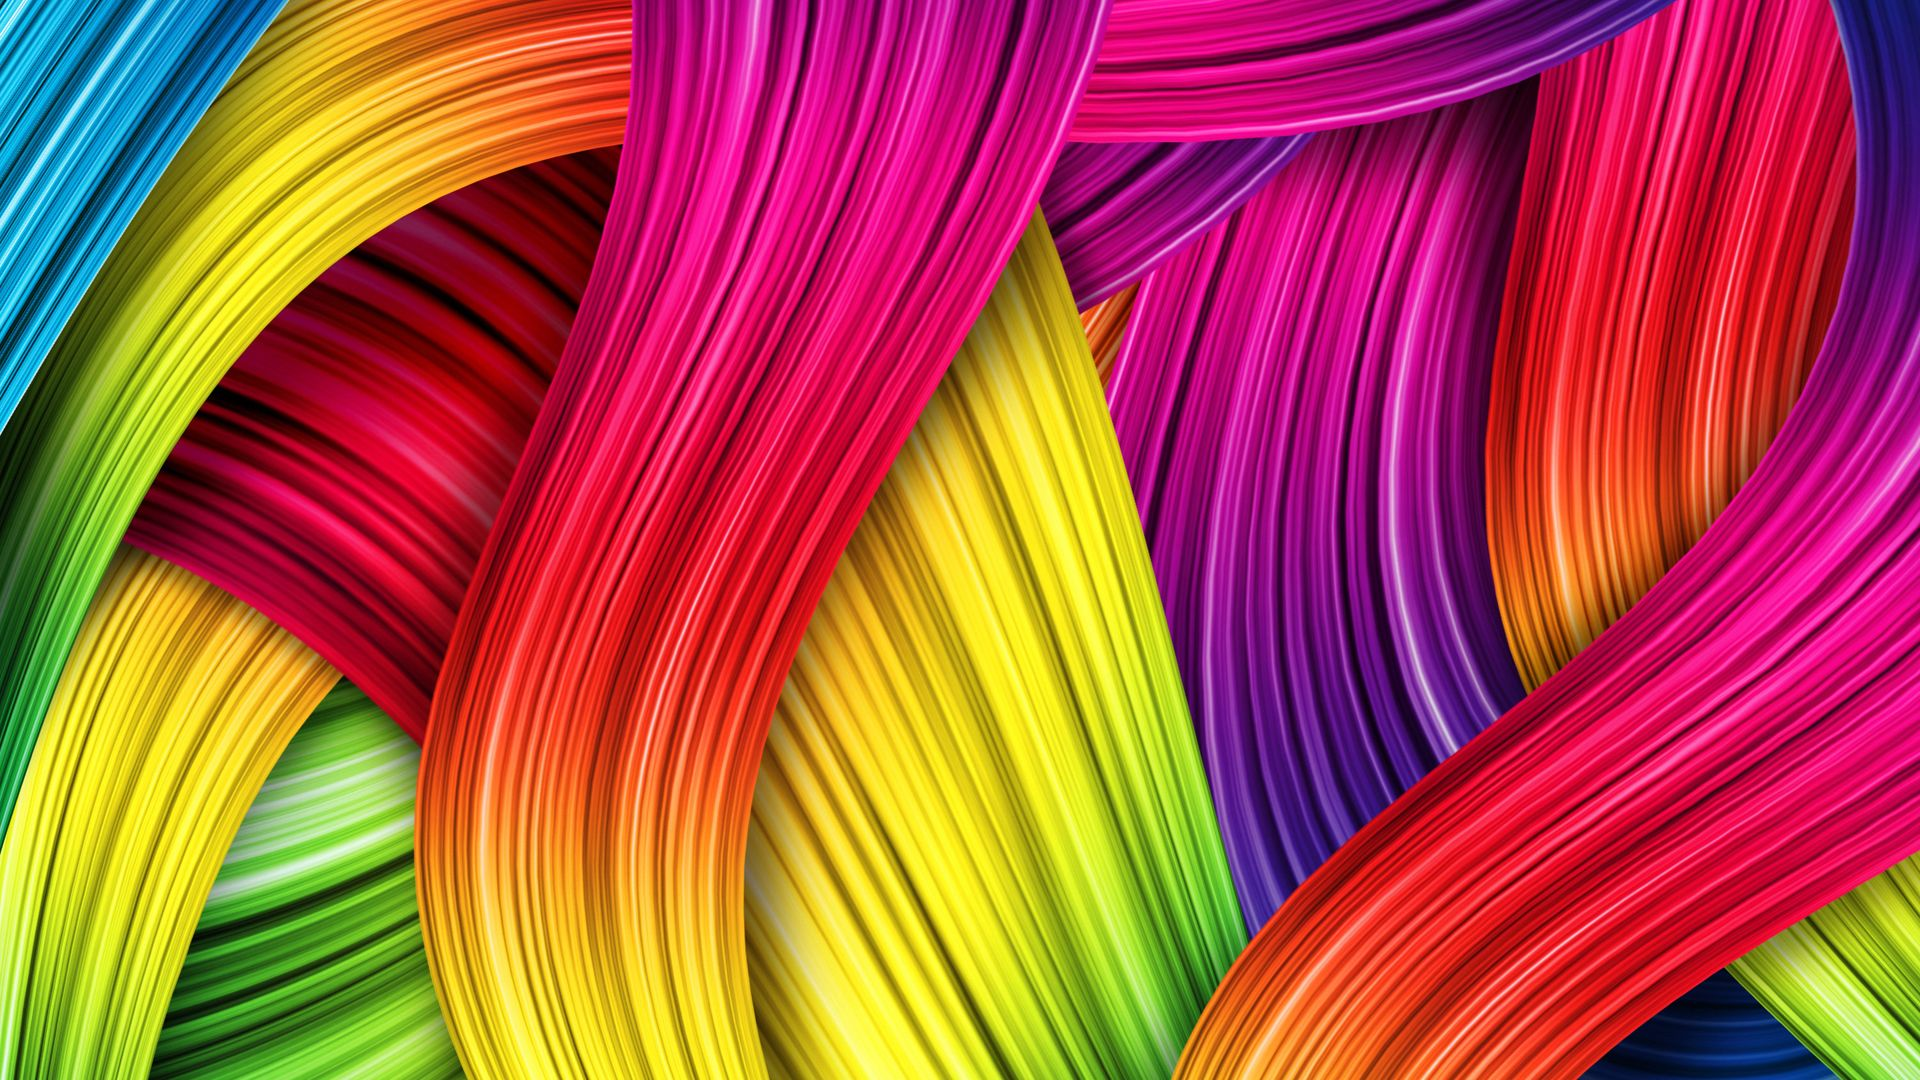 Animated Colorful Thread Wallpaper With Resolutions 1920